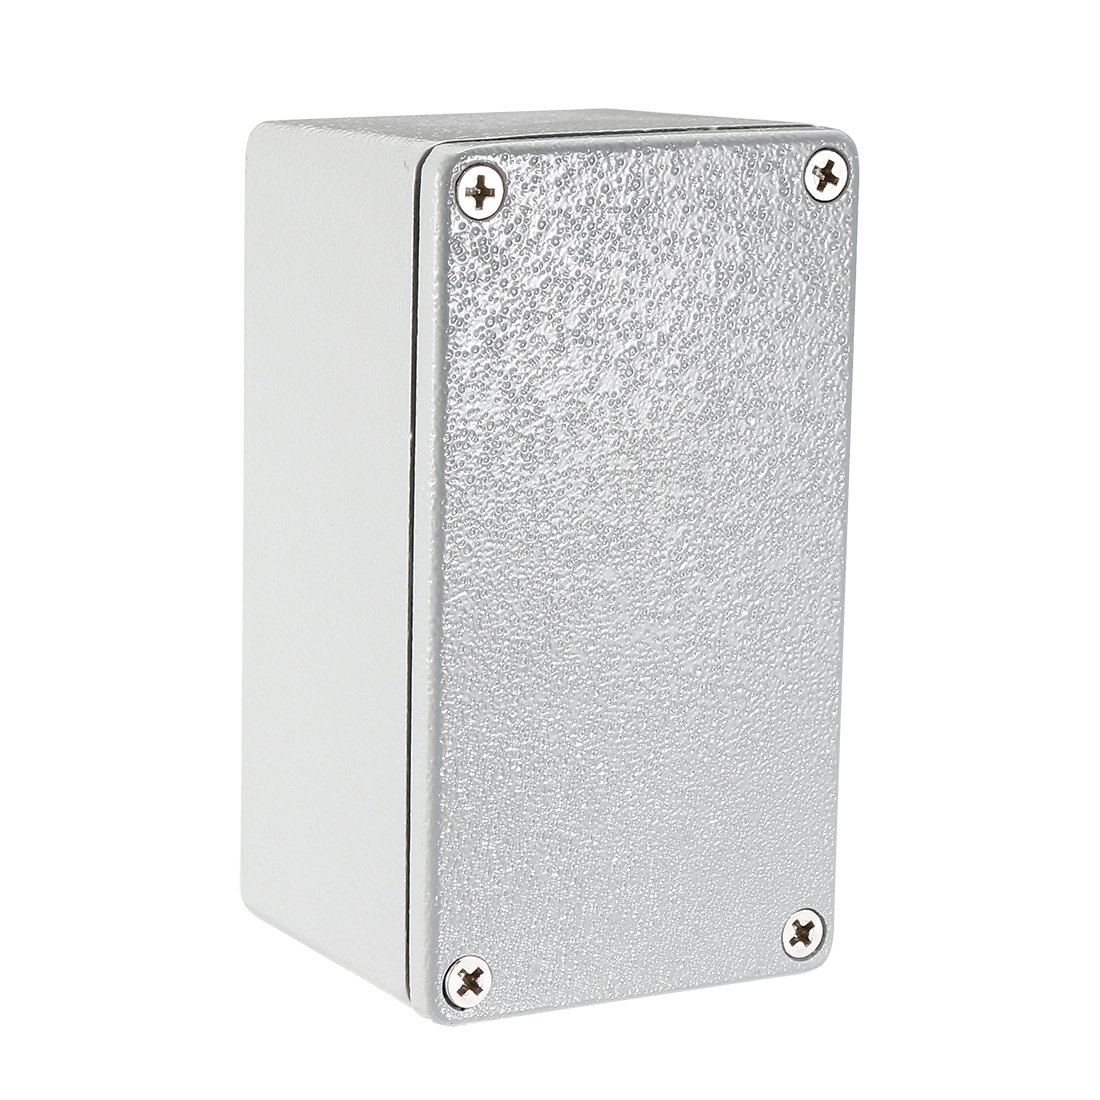 uxcell 3.2x3x2.24(80mmx76mmx57mm) Aluminum Junction Box Universal Electric Project Enclosure a17032800ux0505